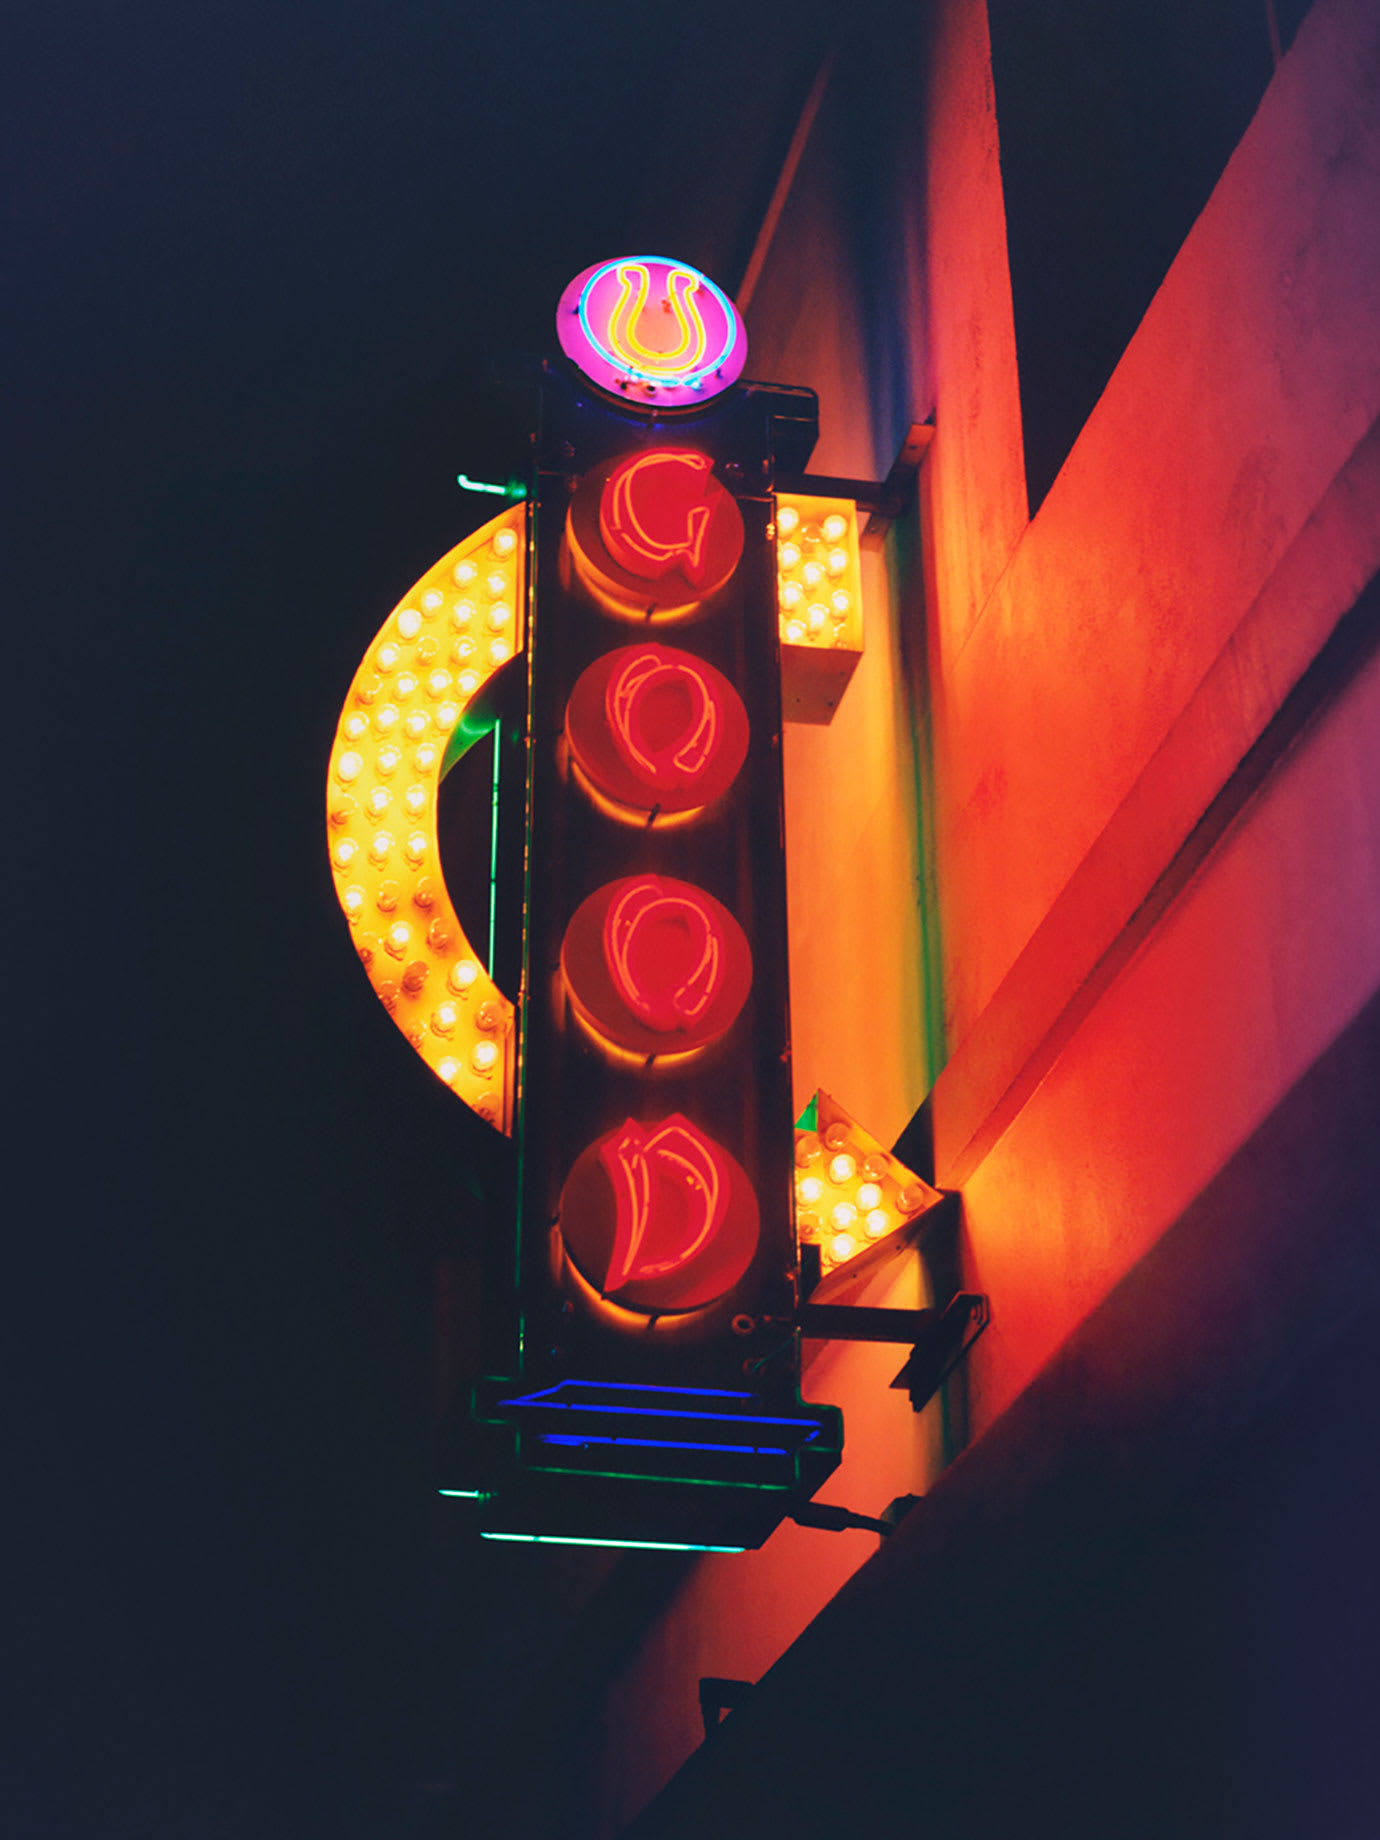 A neon sign with Good written on it.